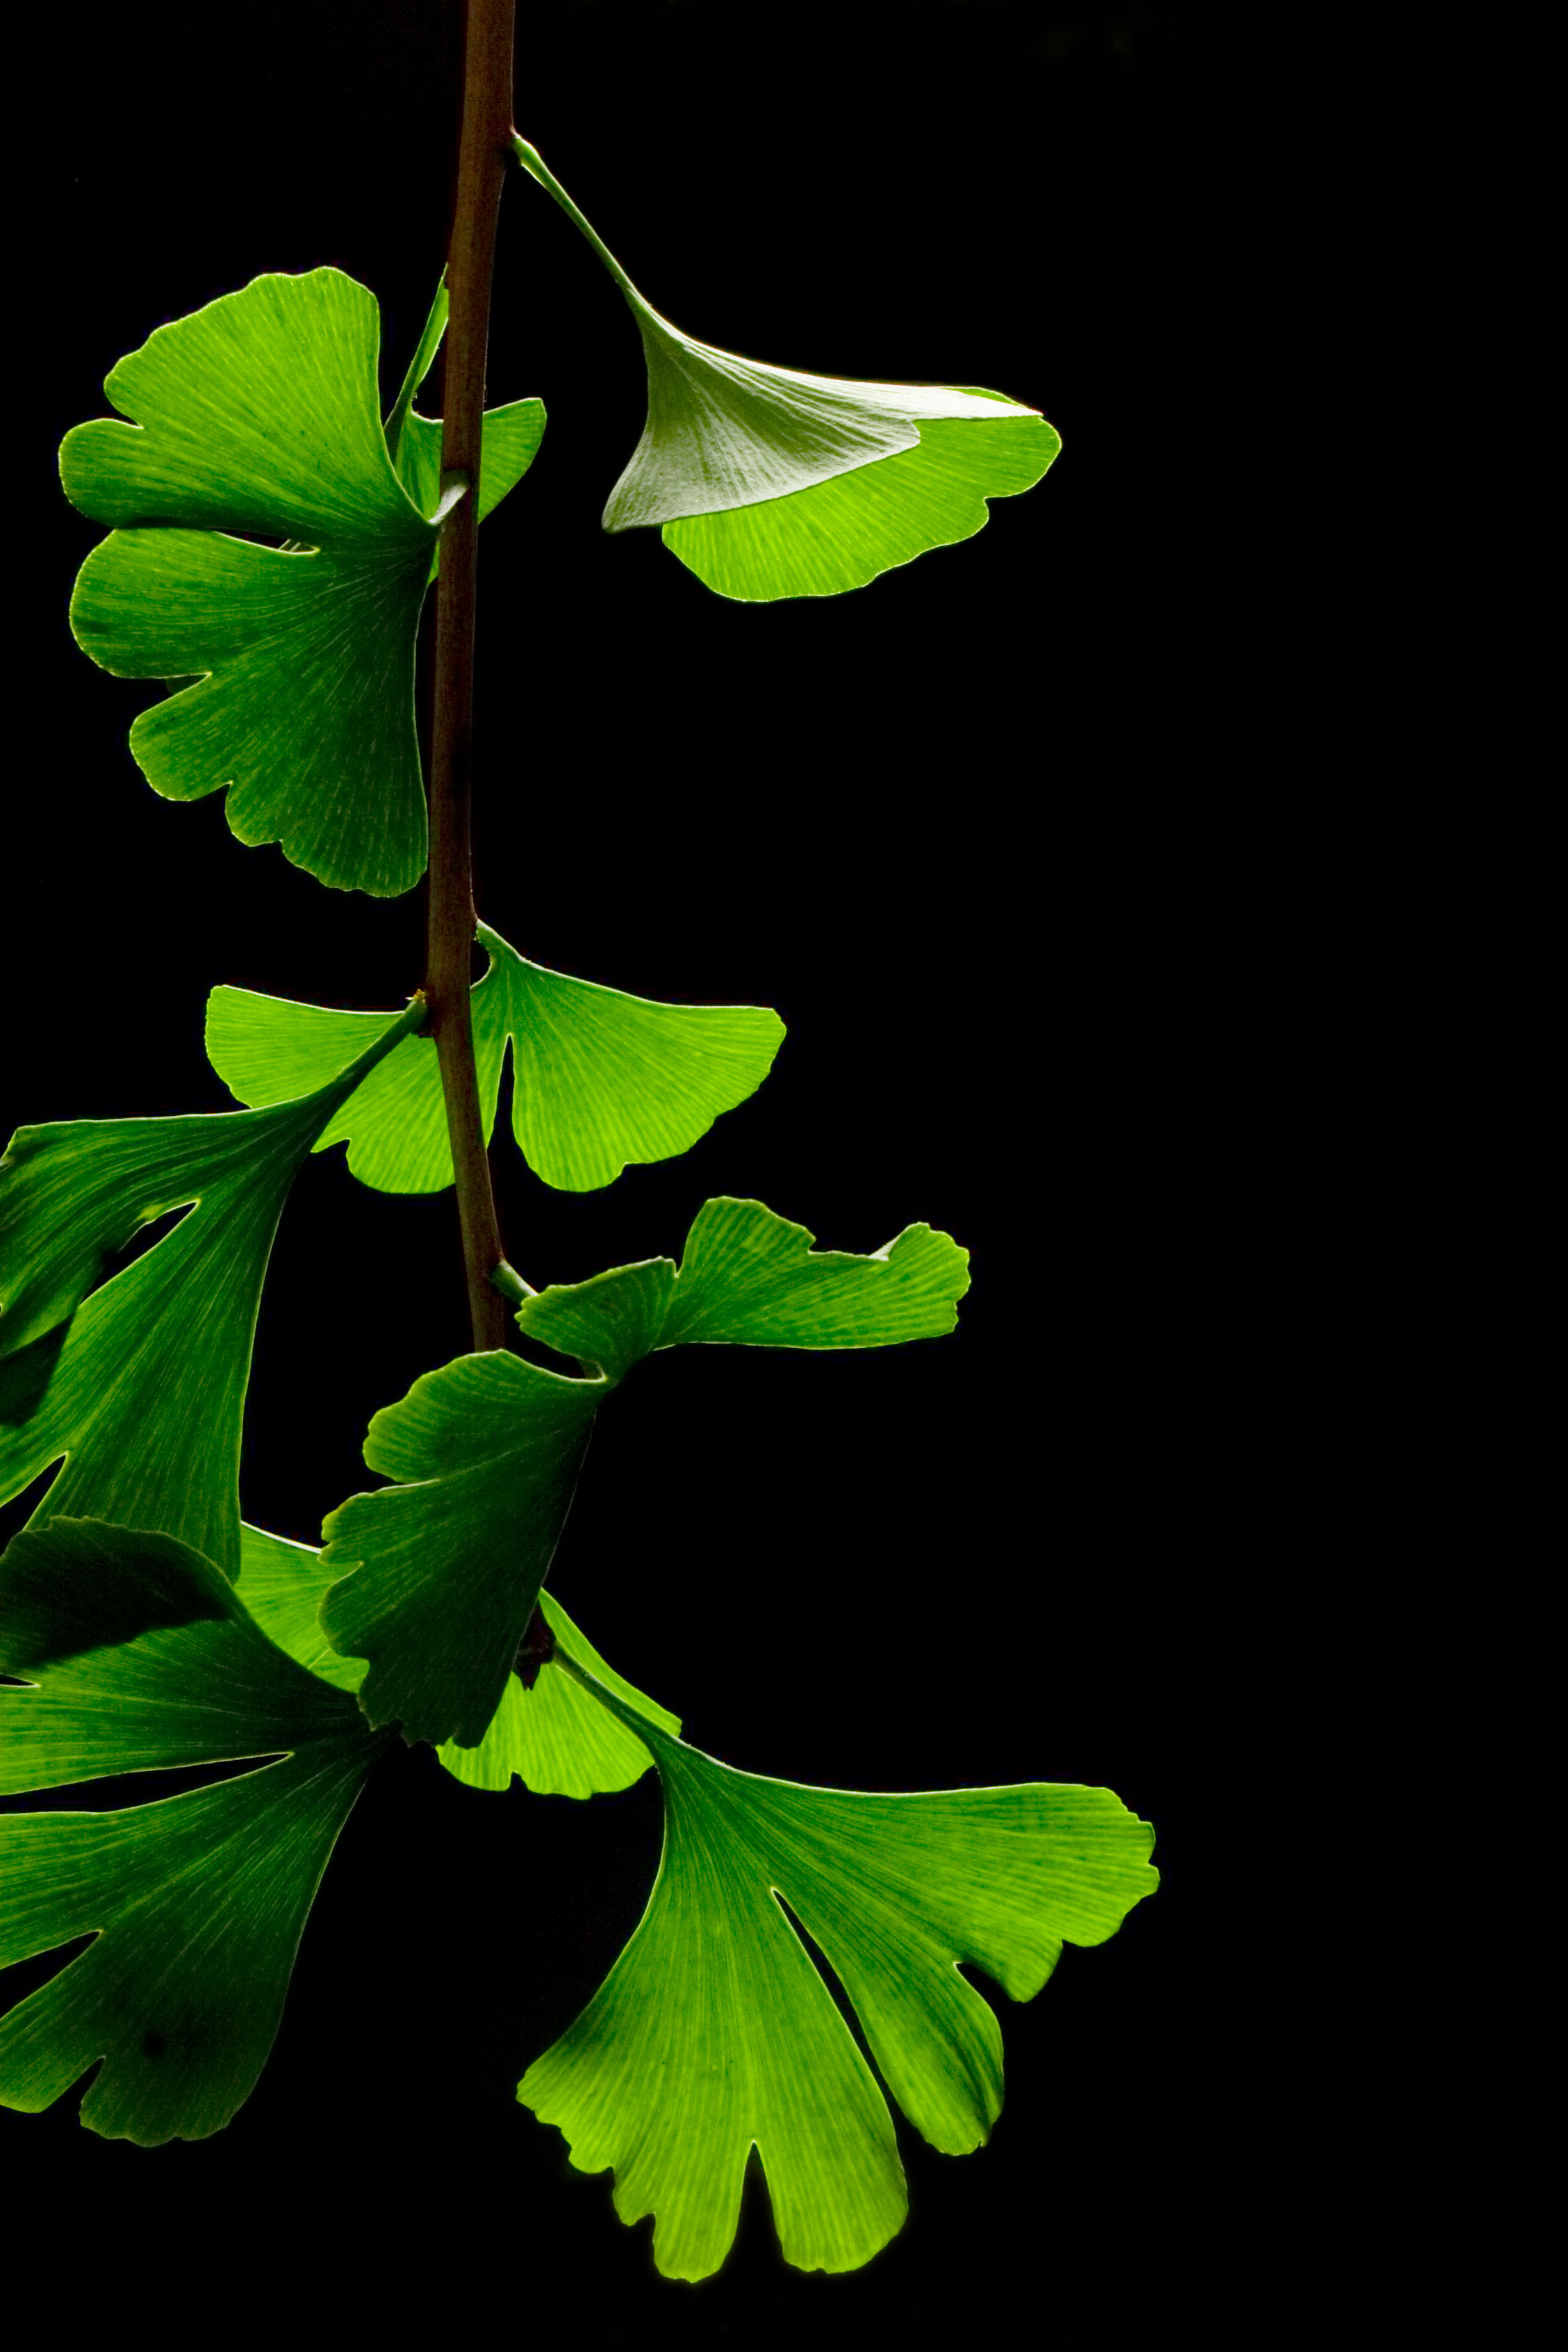 Ginkgo leafs from Wikipedia (Wikimedia Commons, CC BY-SA 3.0)